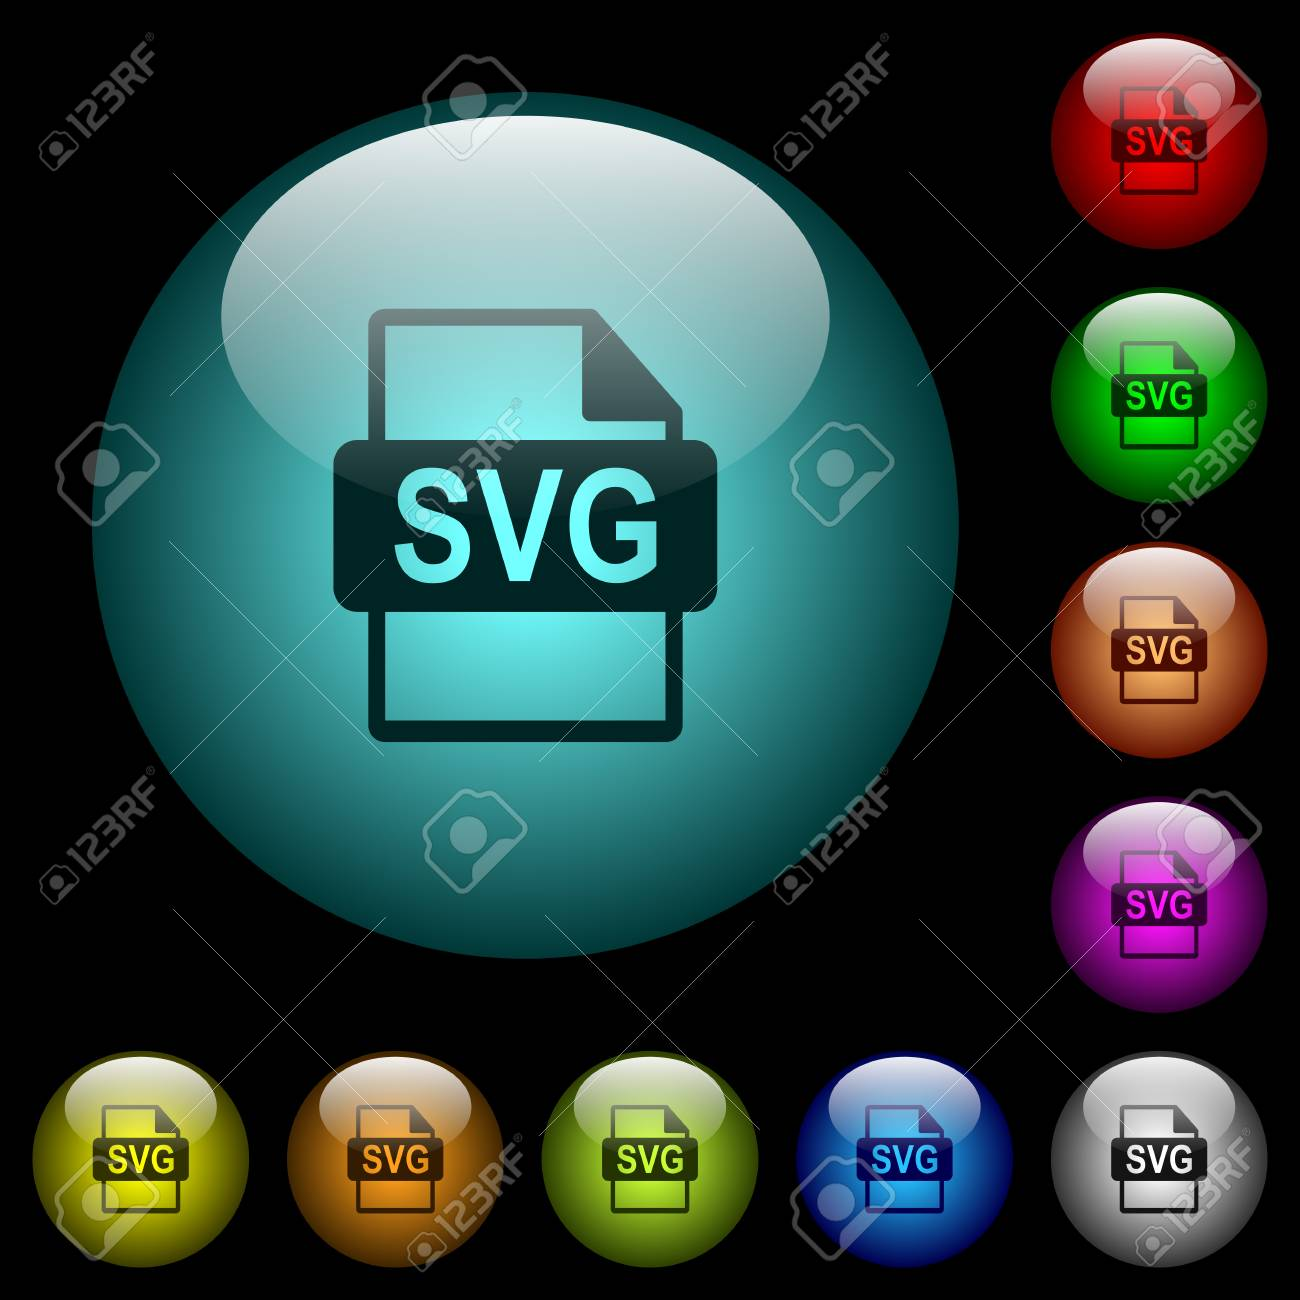 SVG file format icons in color illuminated spherical glass buttons